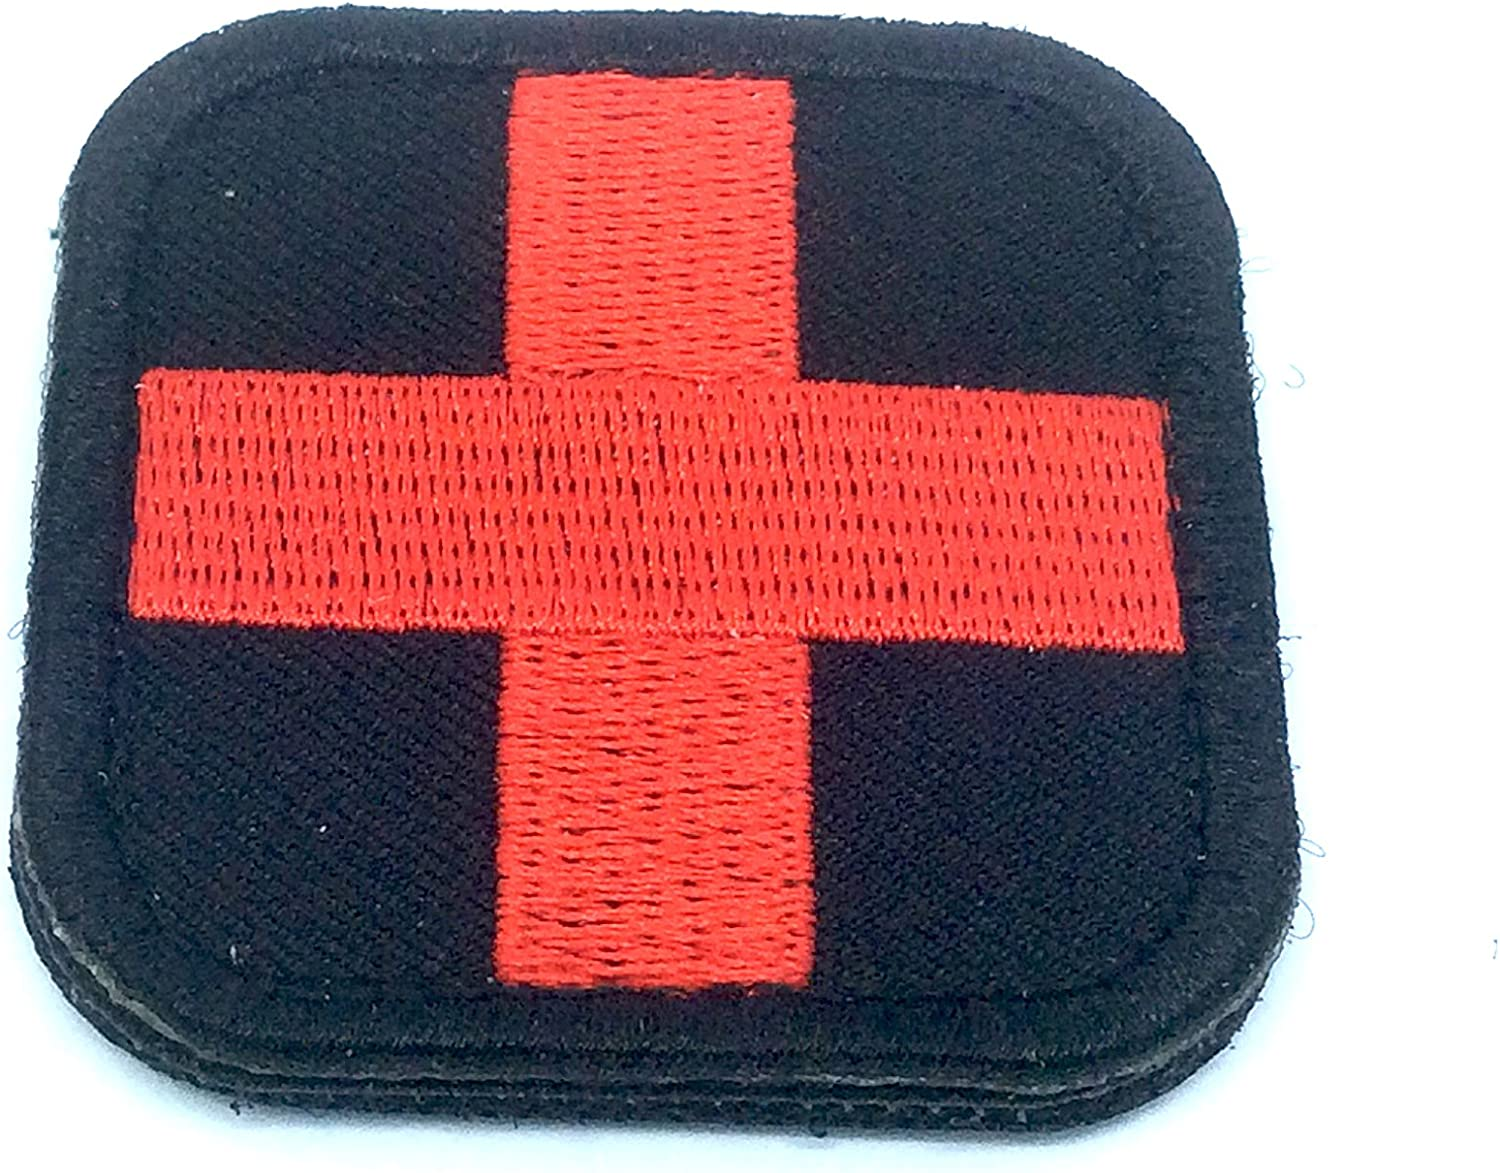 Medic croce rossa nero ricamato Airsoft Paintball patch